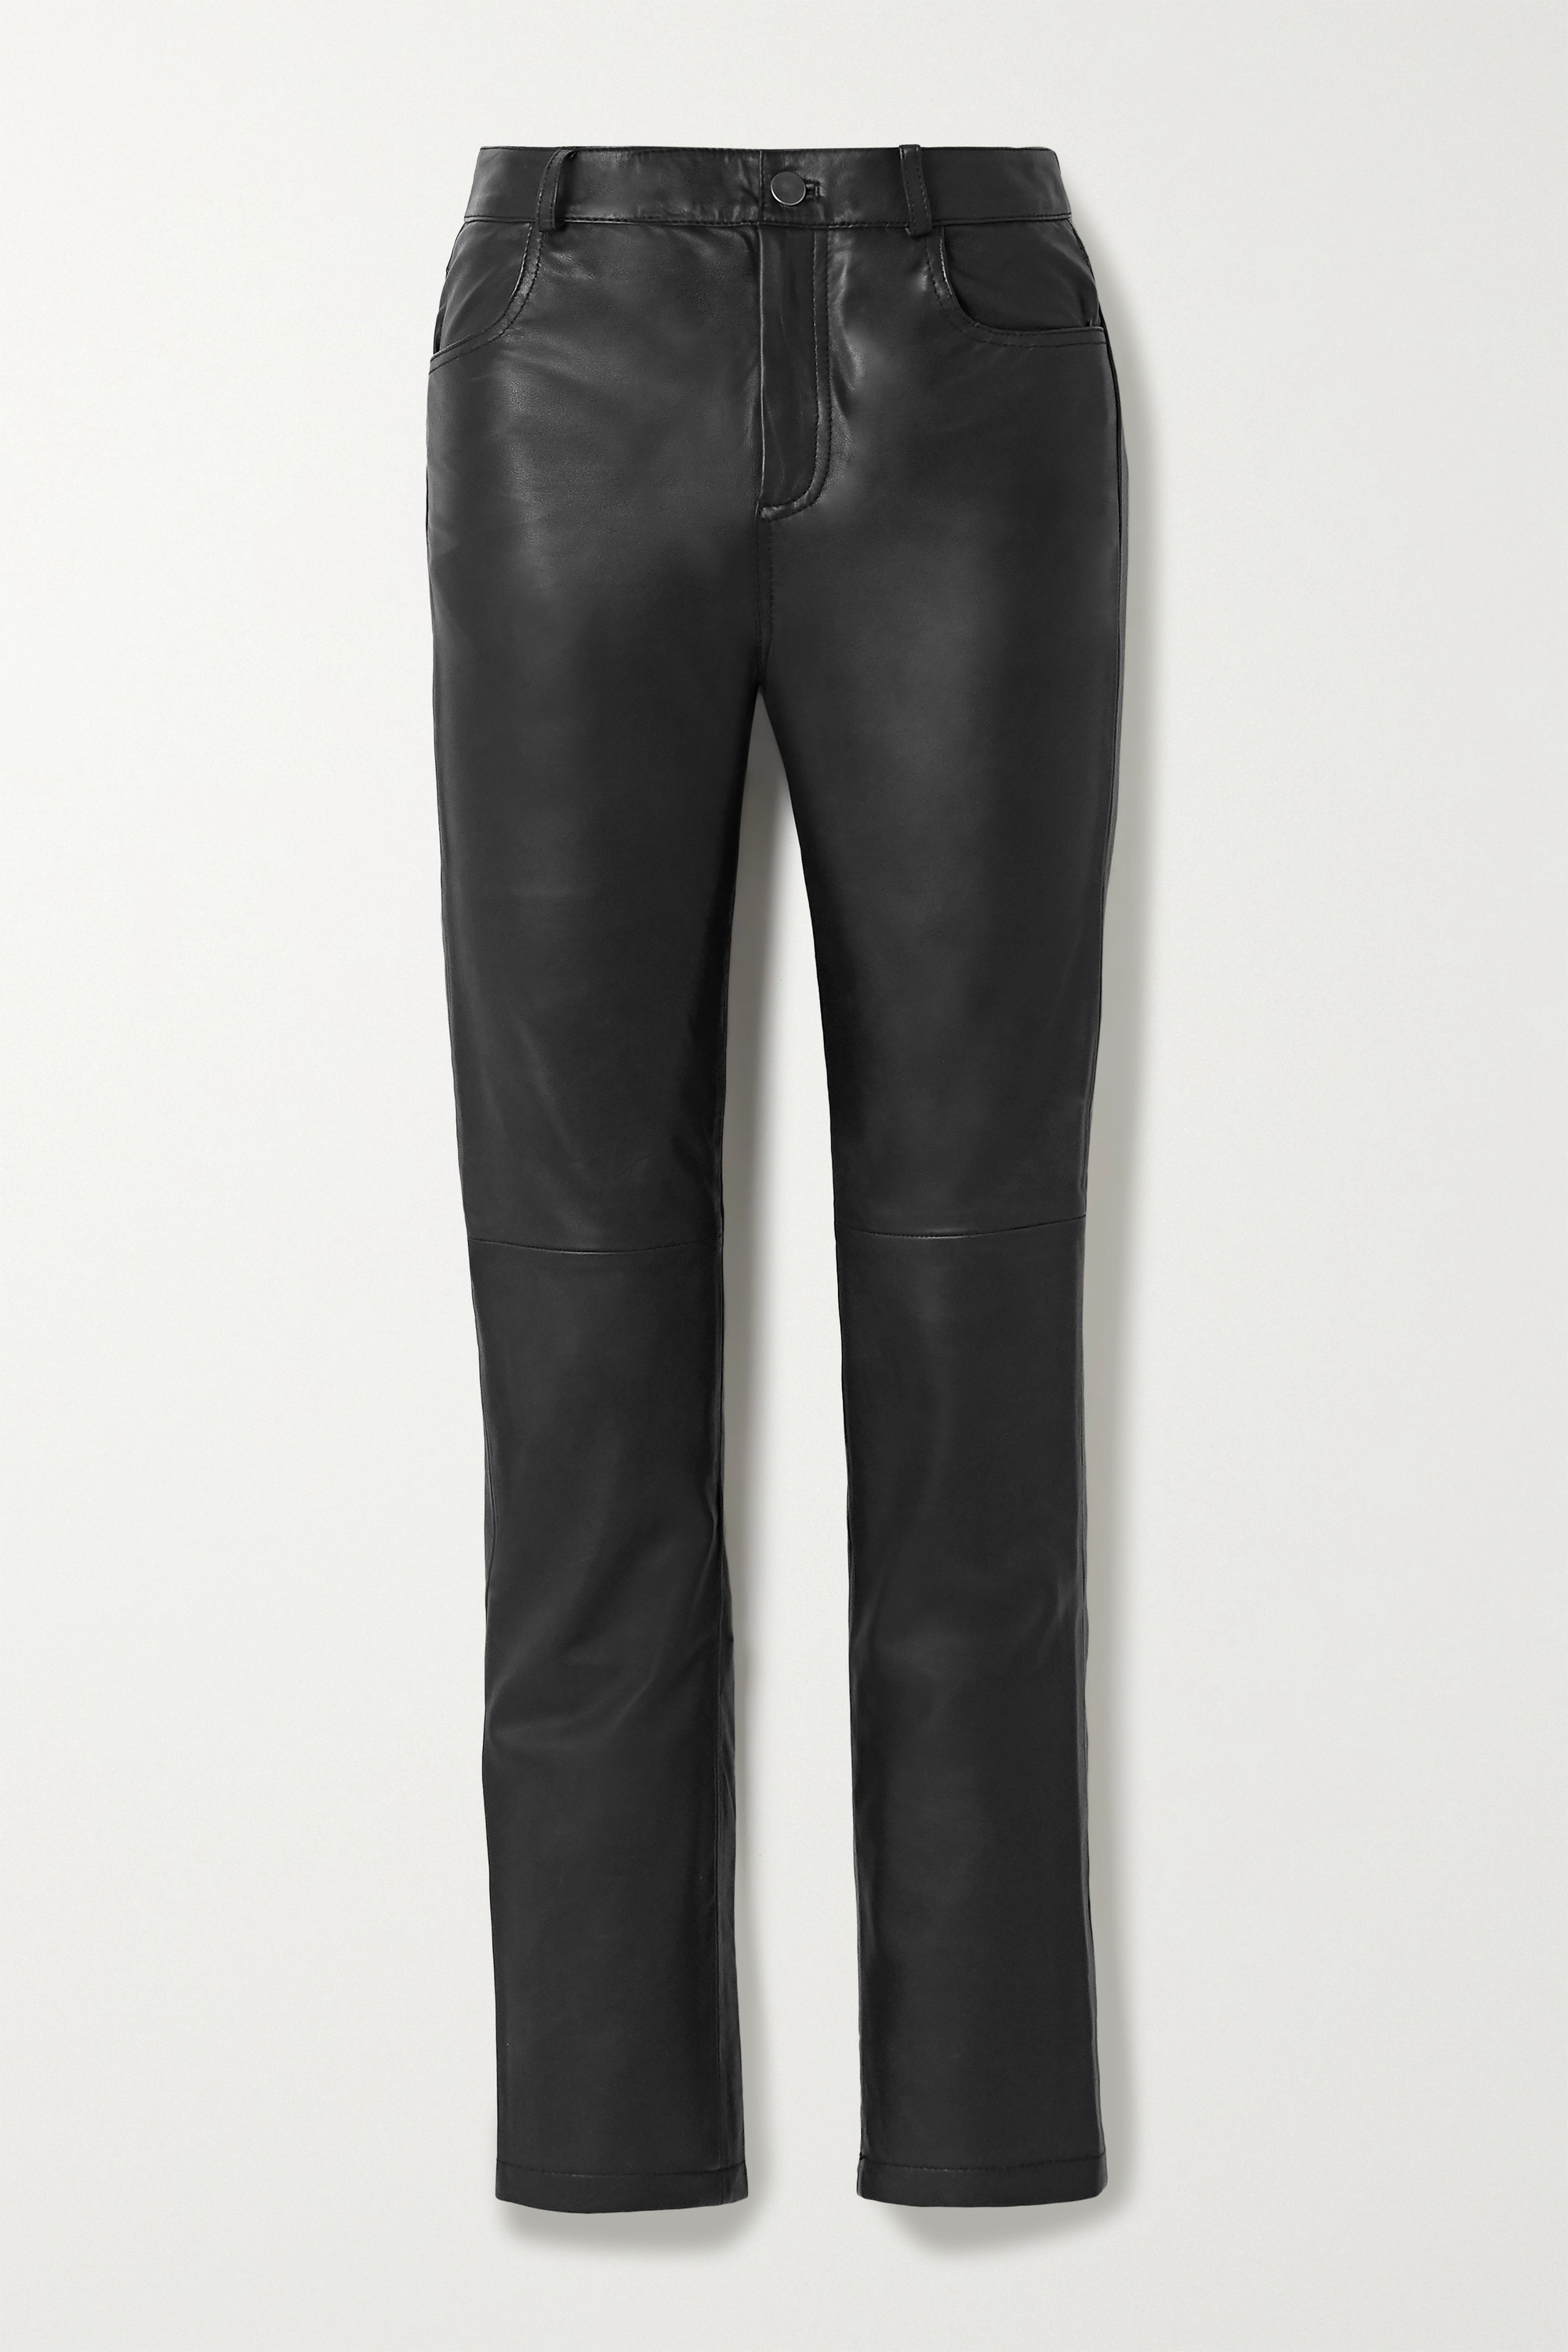 Deadwood + NET SUSTAIN Phoenix leather straight-leg pants